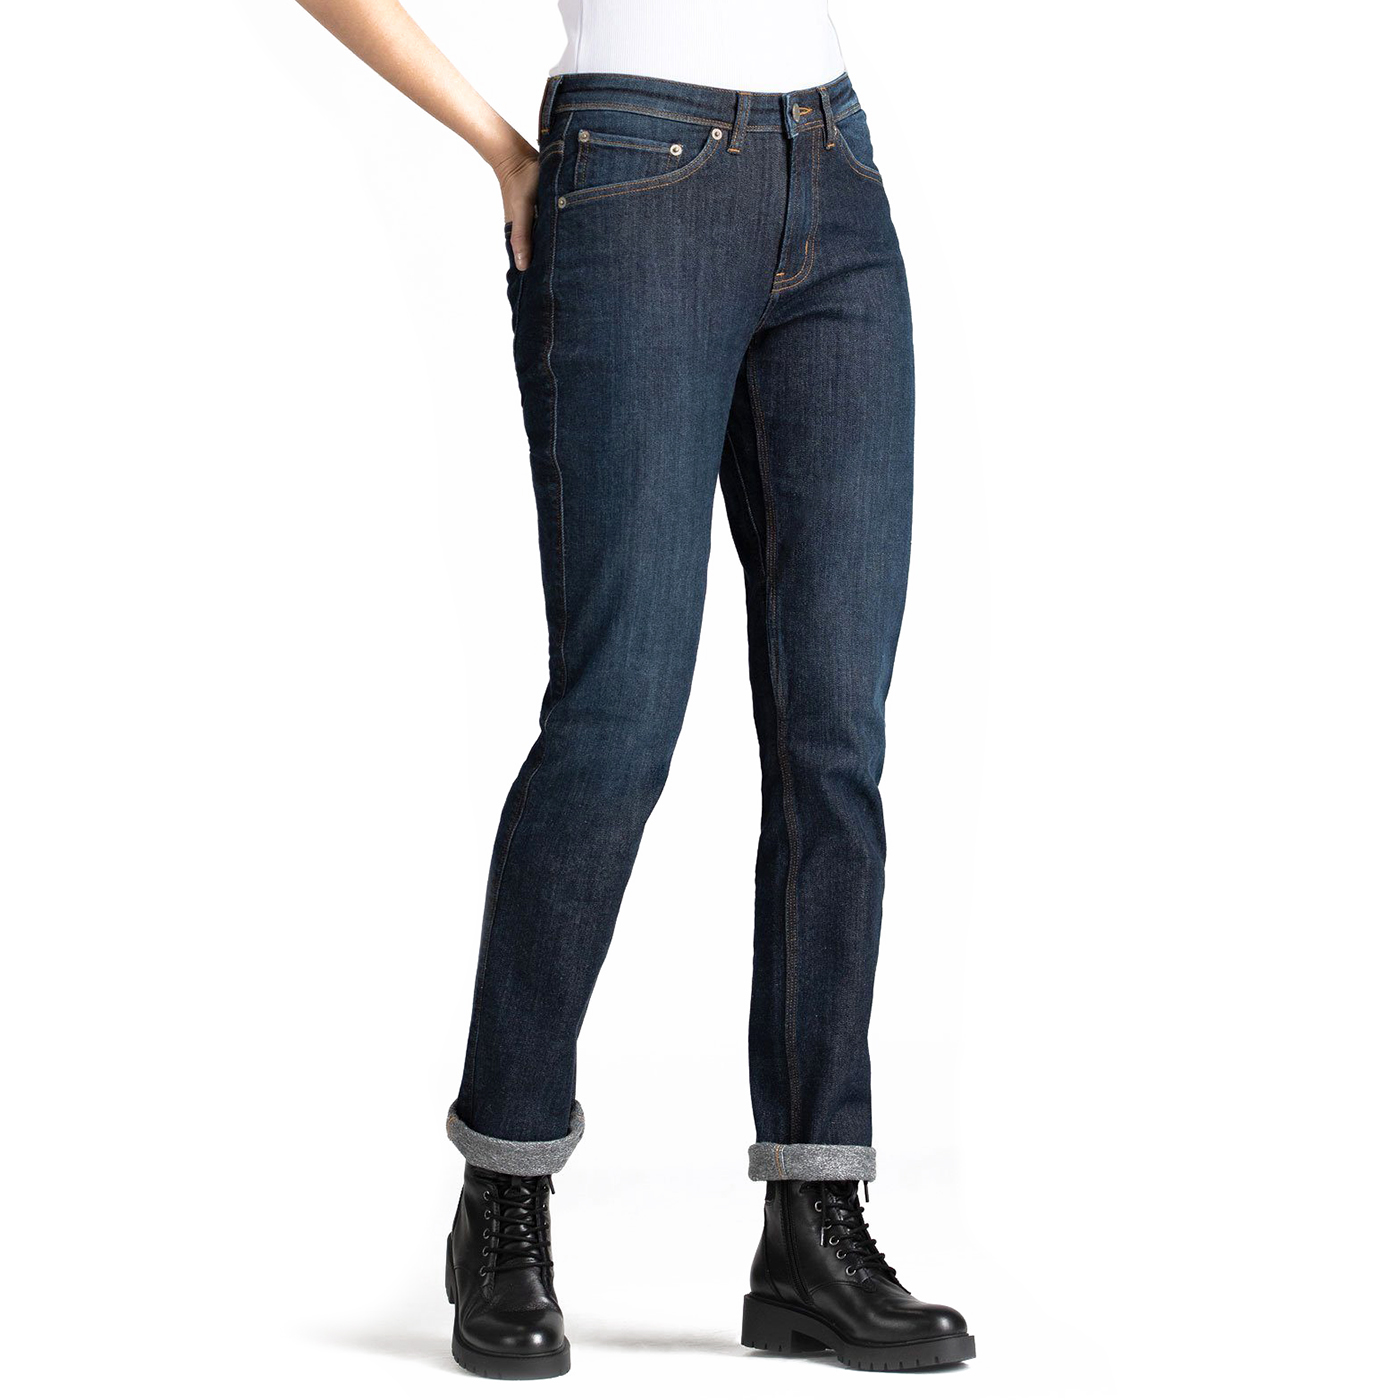 Warm Clothes for Women: Duer Fleece Stretch Jeans Slim Straight Jeans